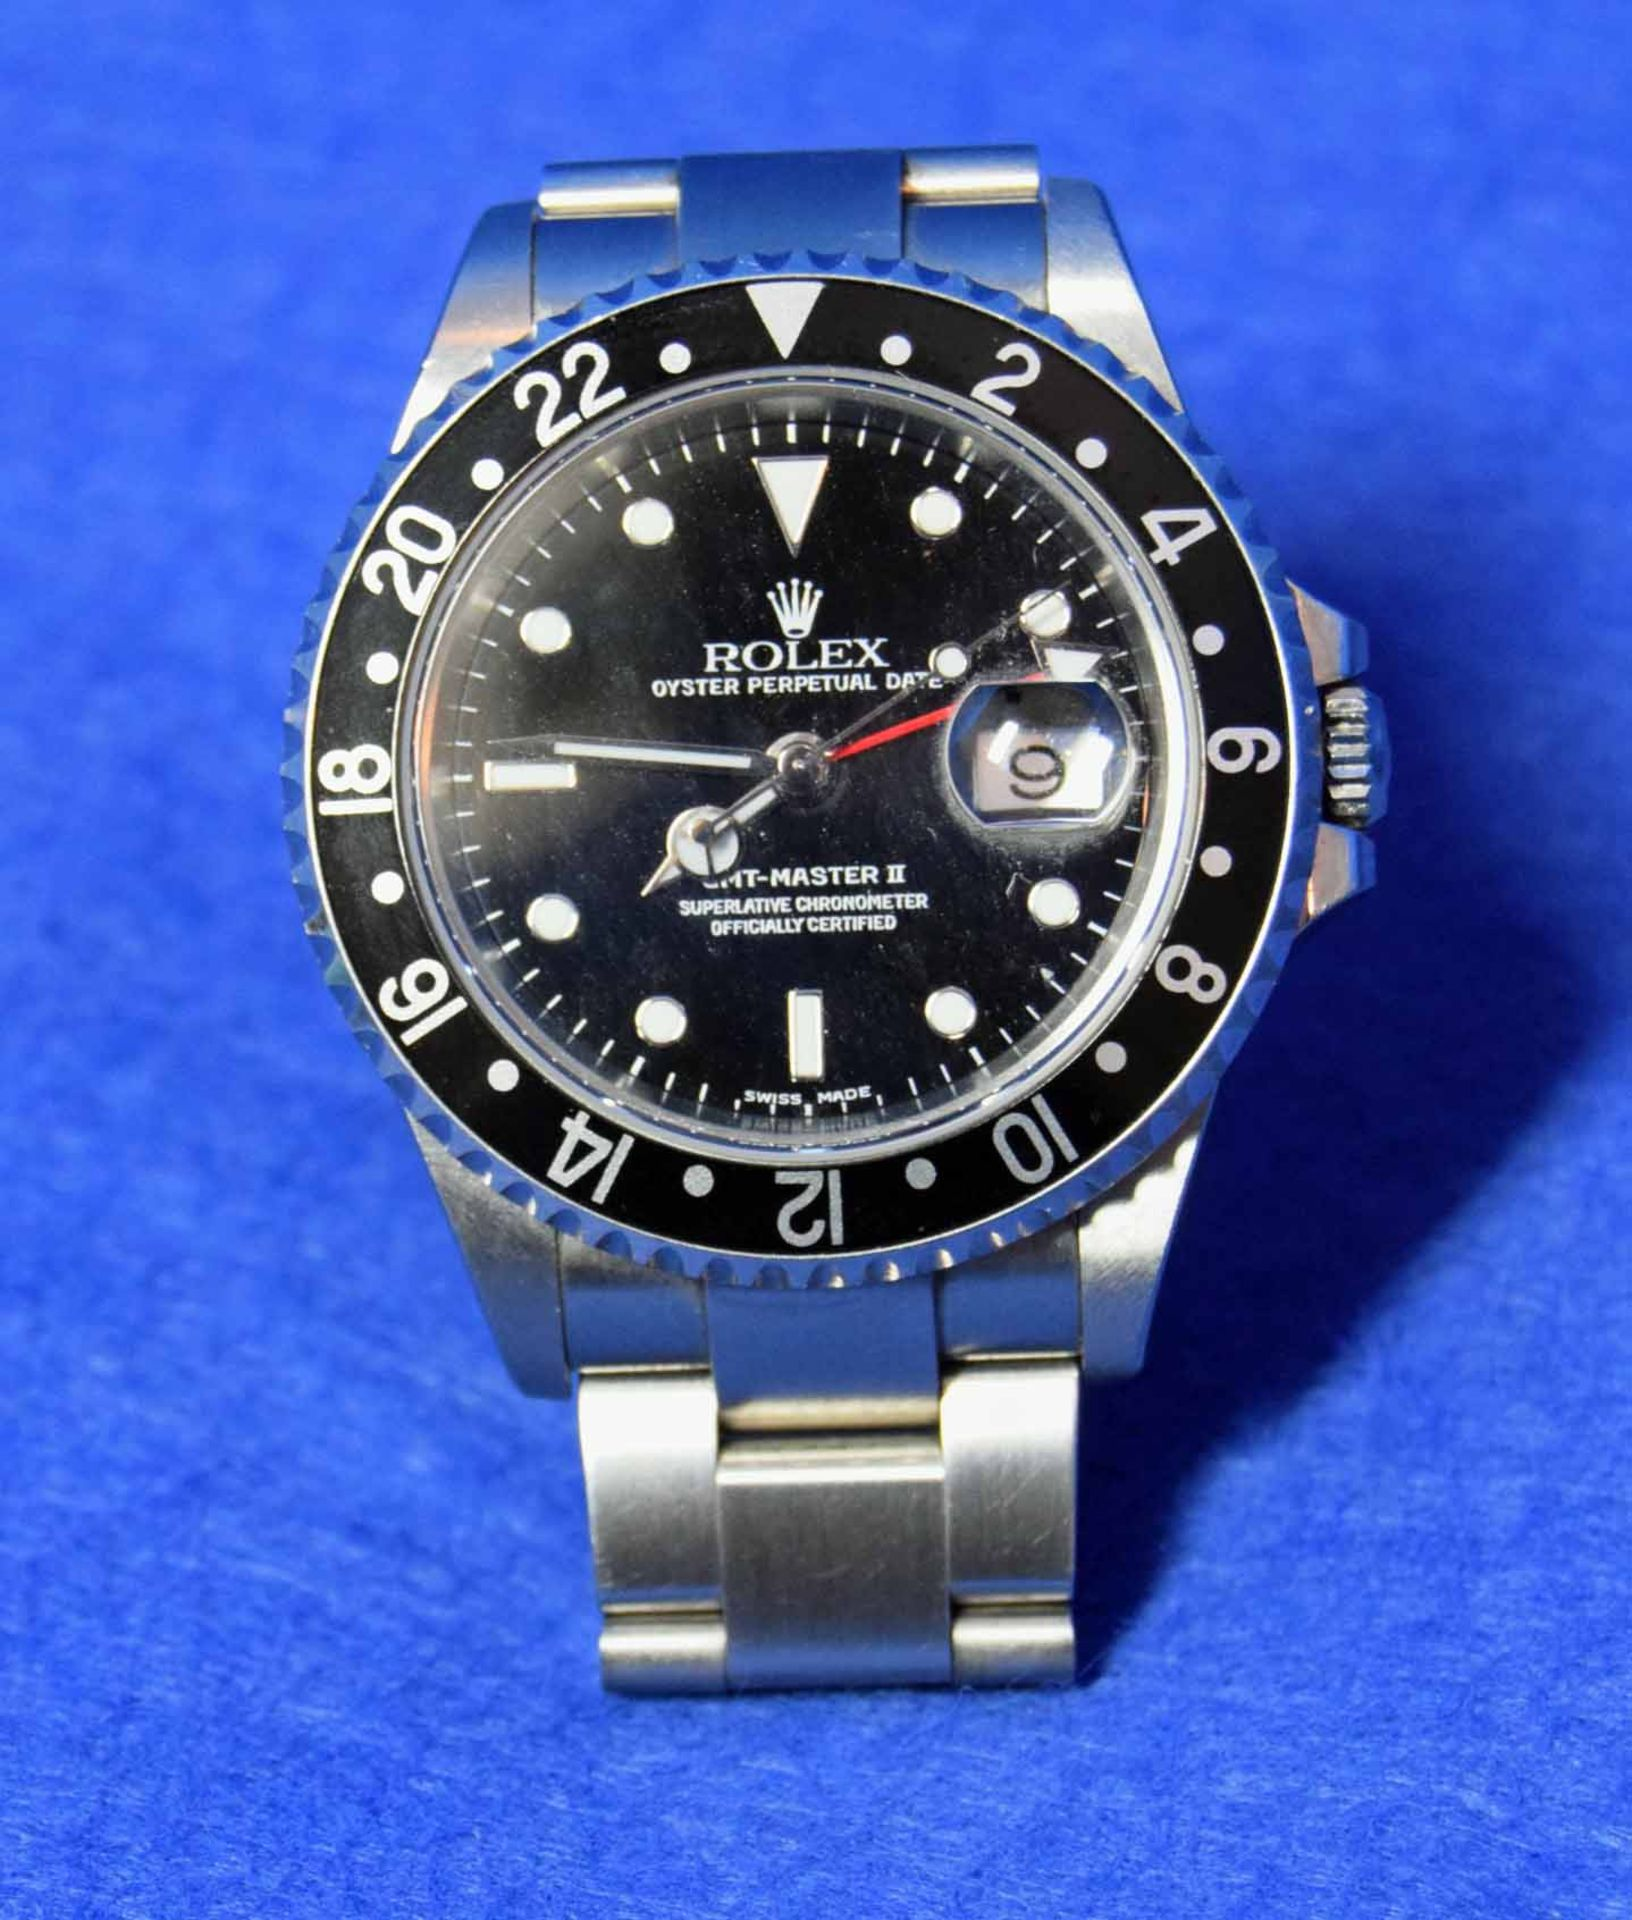 A ROLEX GMT-Master II Watch in a 40mm dia. Oyster Steel Case, with a Black Dial surrounded by a - Image 2 of 7